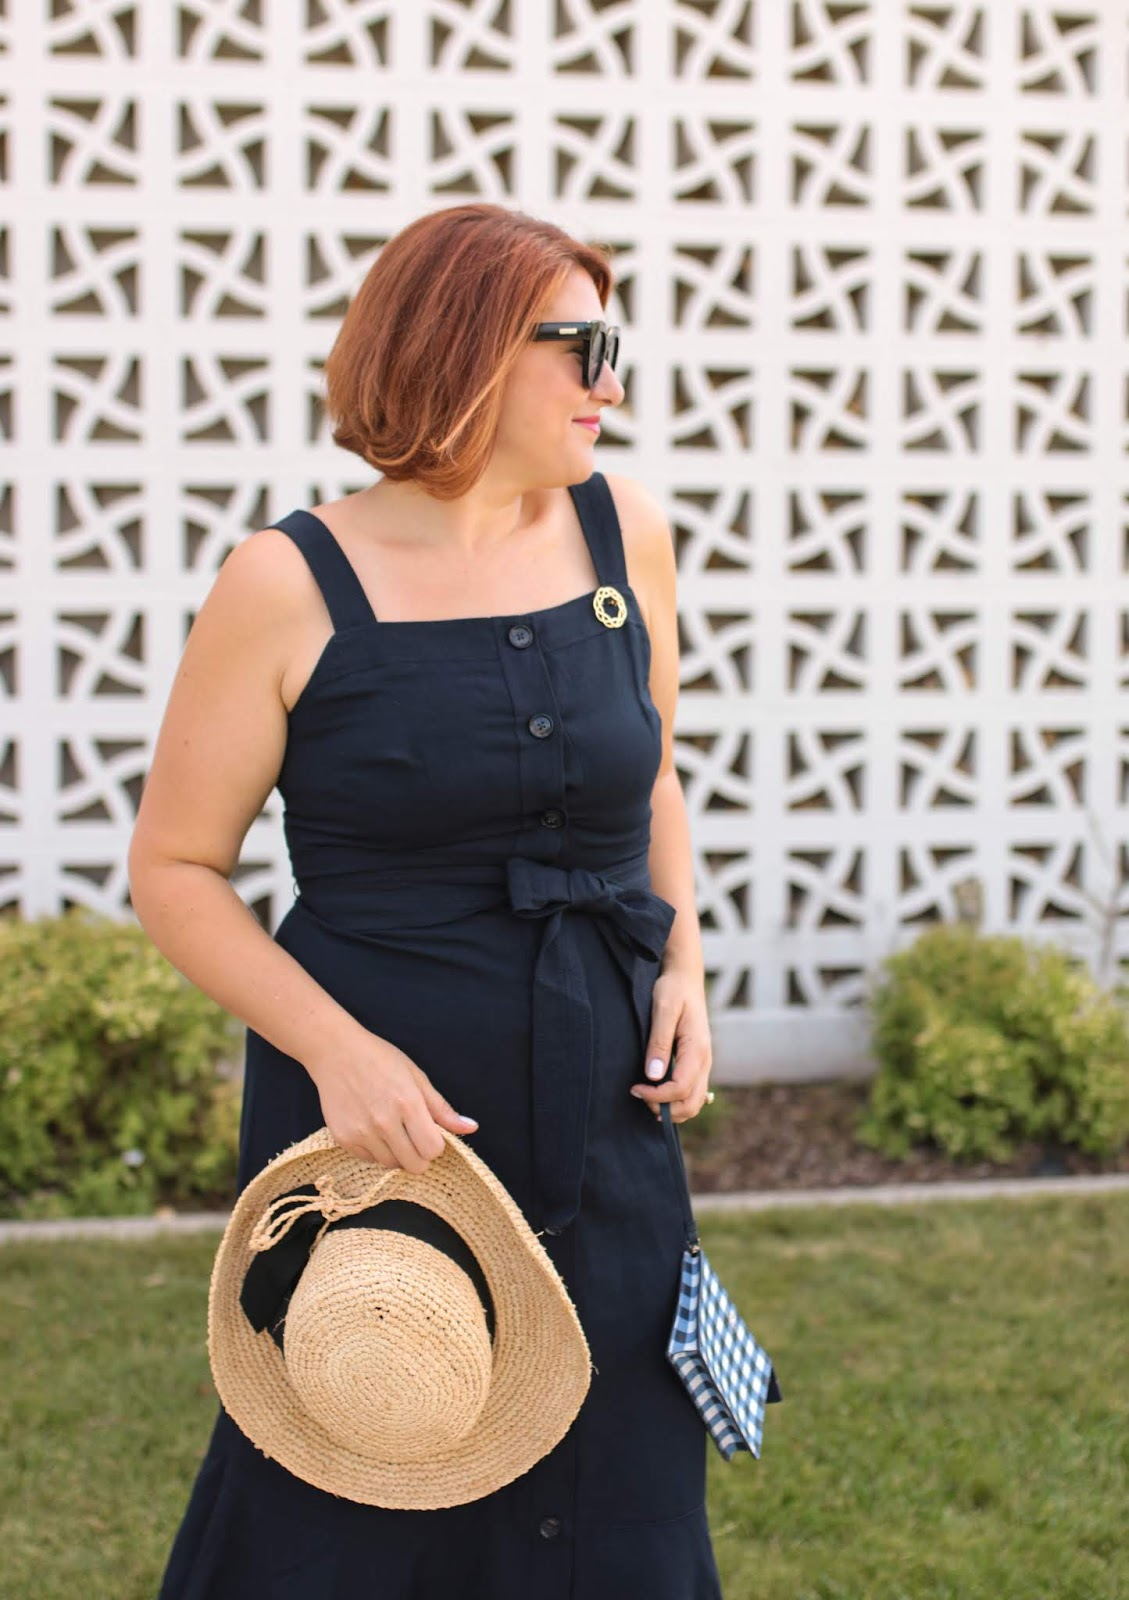 Banana republic navy linen trumped dress, Kate spade gingham wristlet, chanel look alike sling-backs